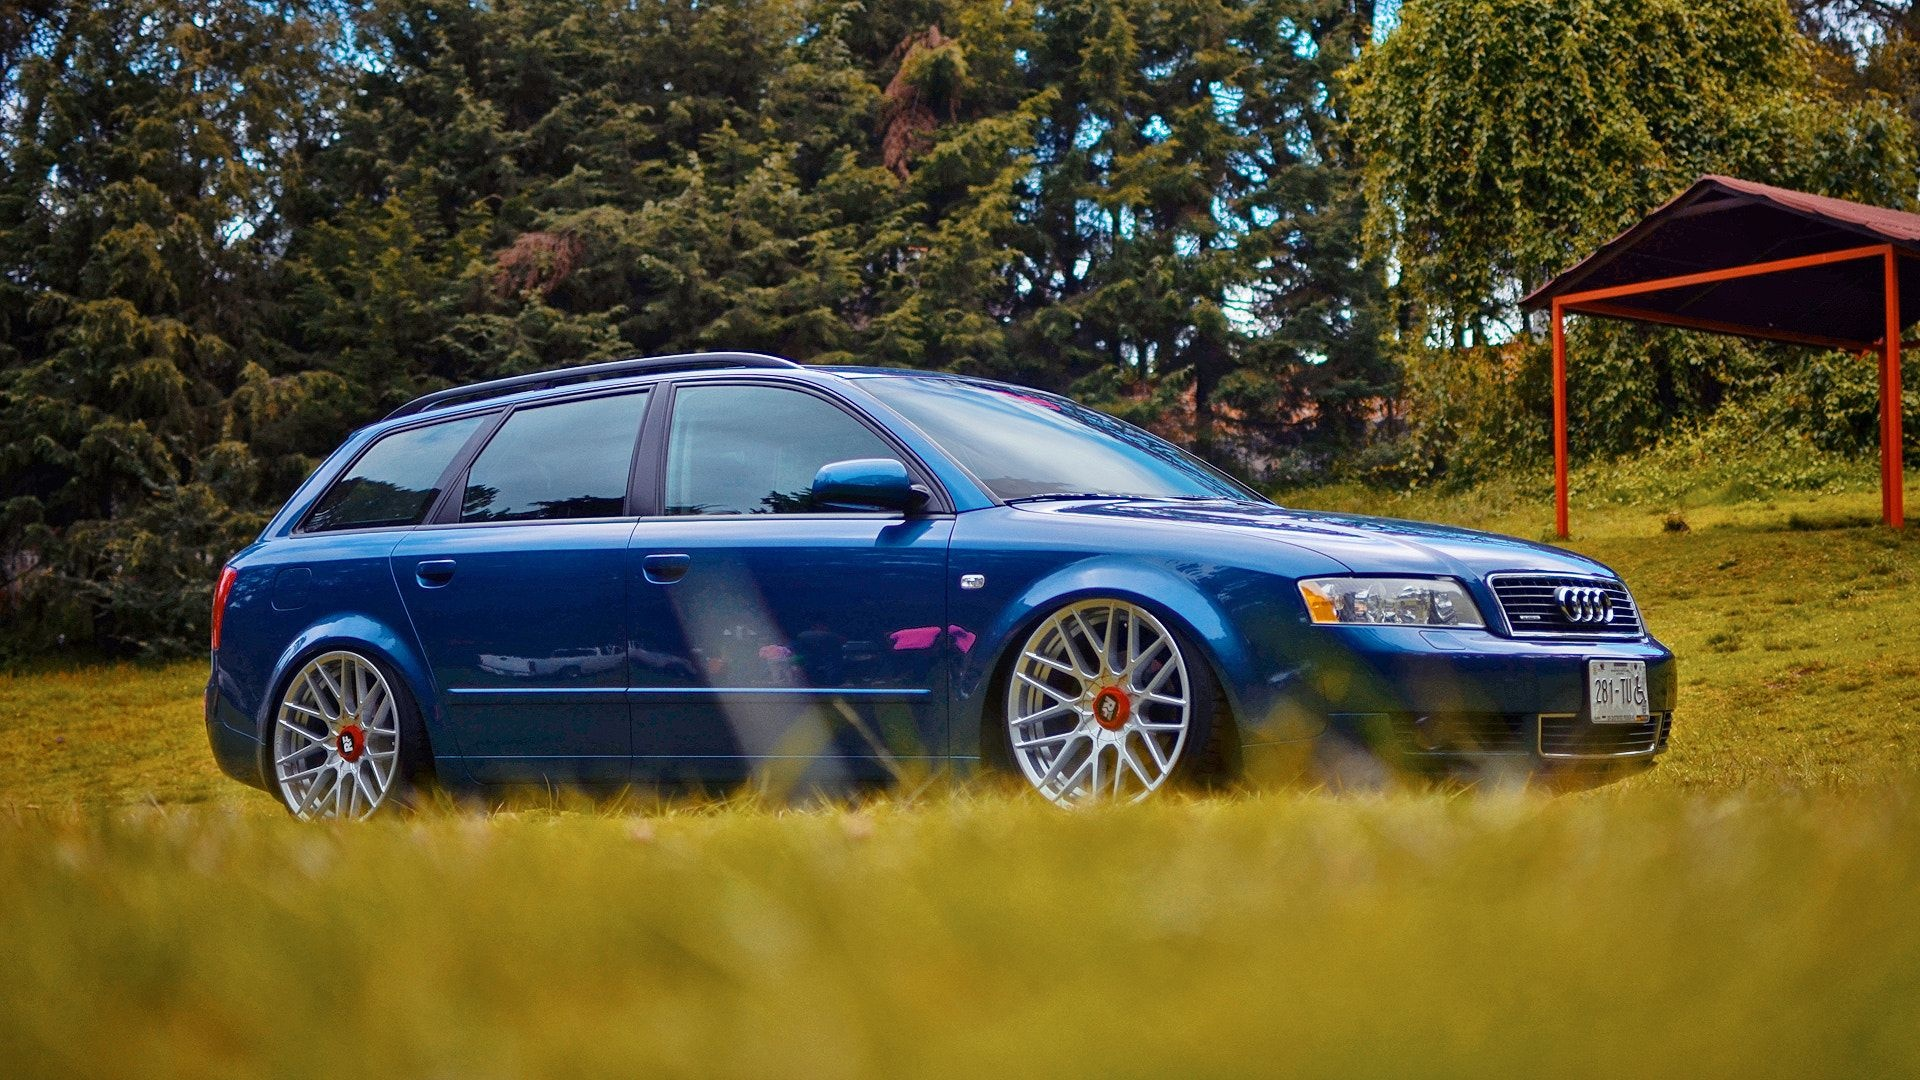 Audi A4 Avant Modified Luxury Audi Avant Amazing Audi Avant Bagged Sittin In Rse Rotiforms-2460 Of Fresh Audi A4 Avant Modified